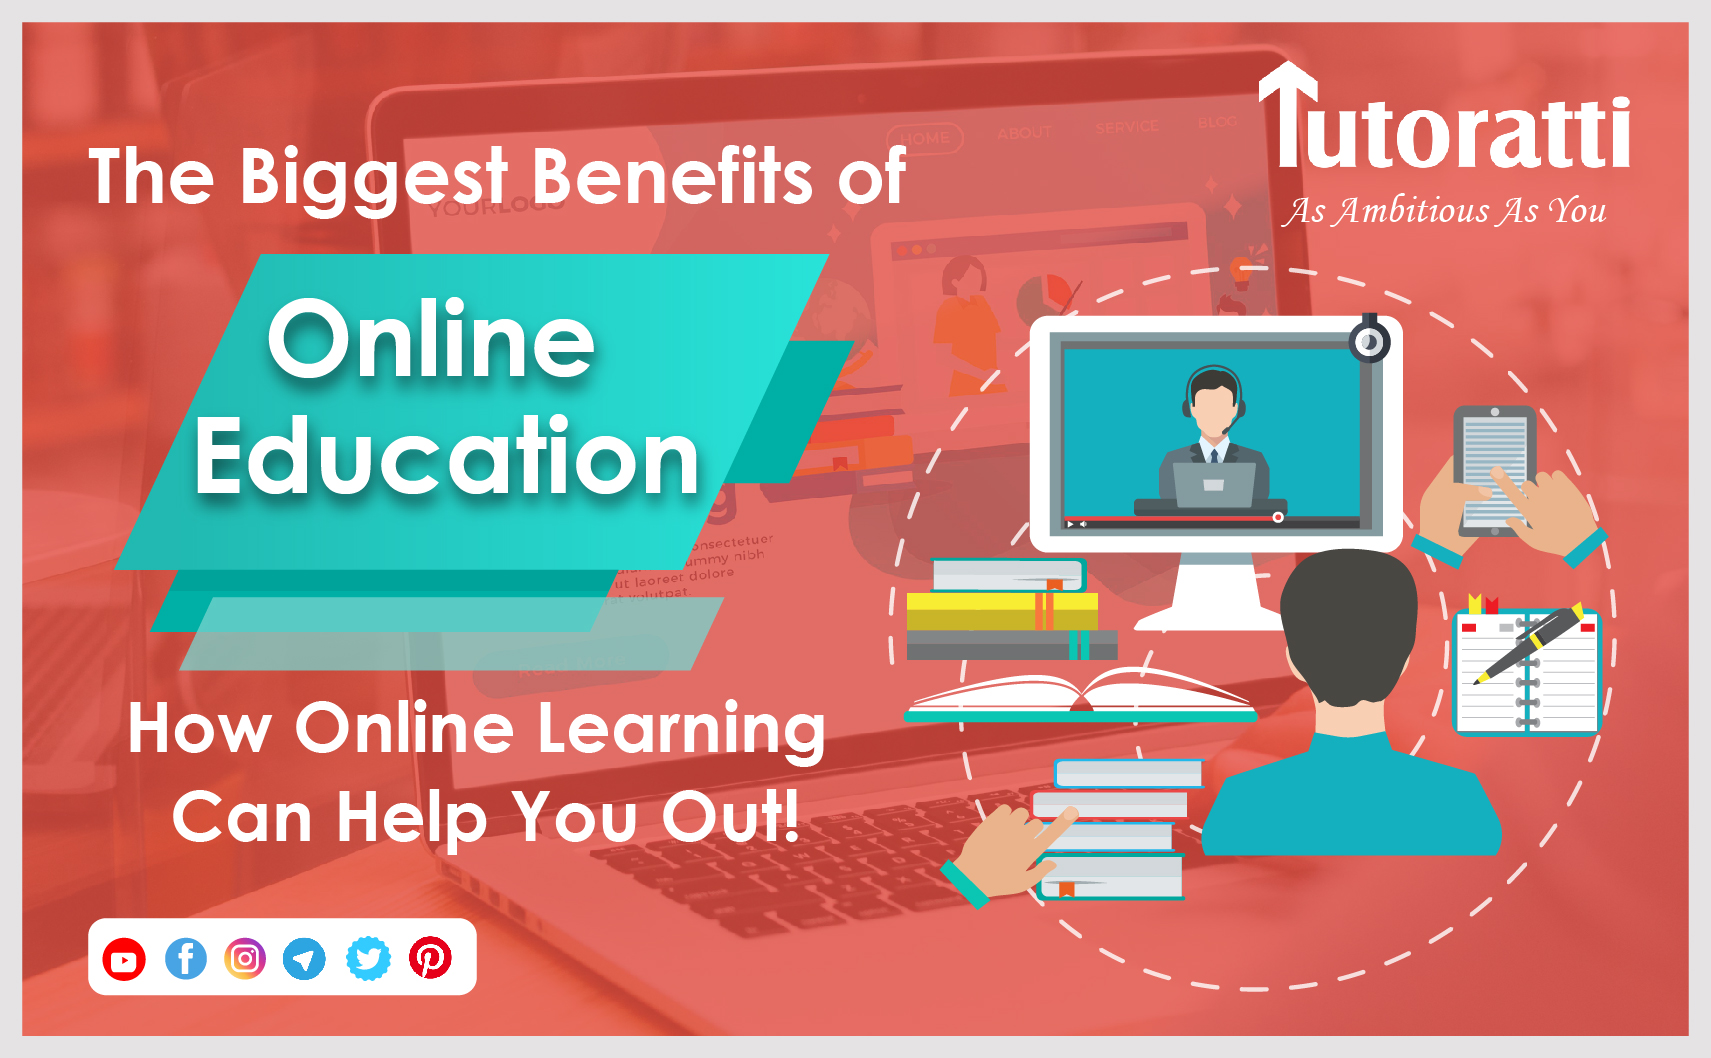 The Biggest Benefits of Online Education: How Online Learning Can Help You Out!